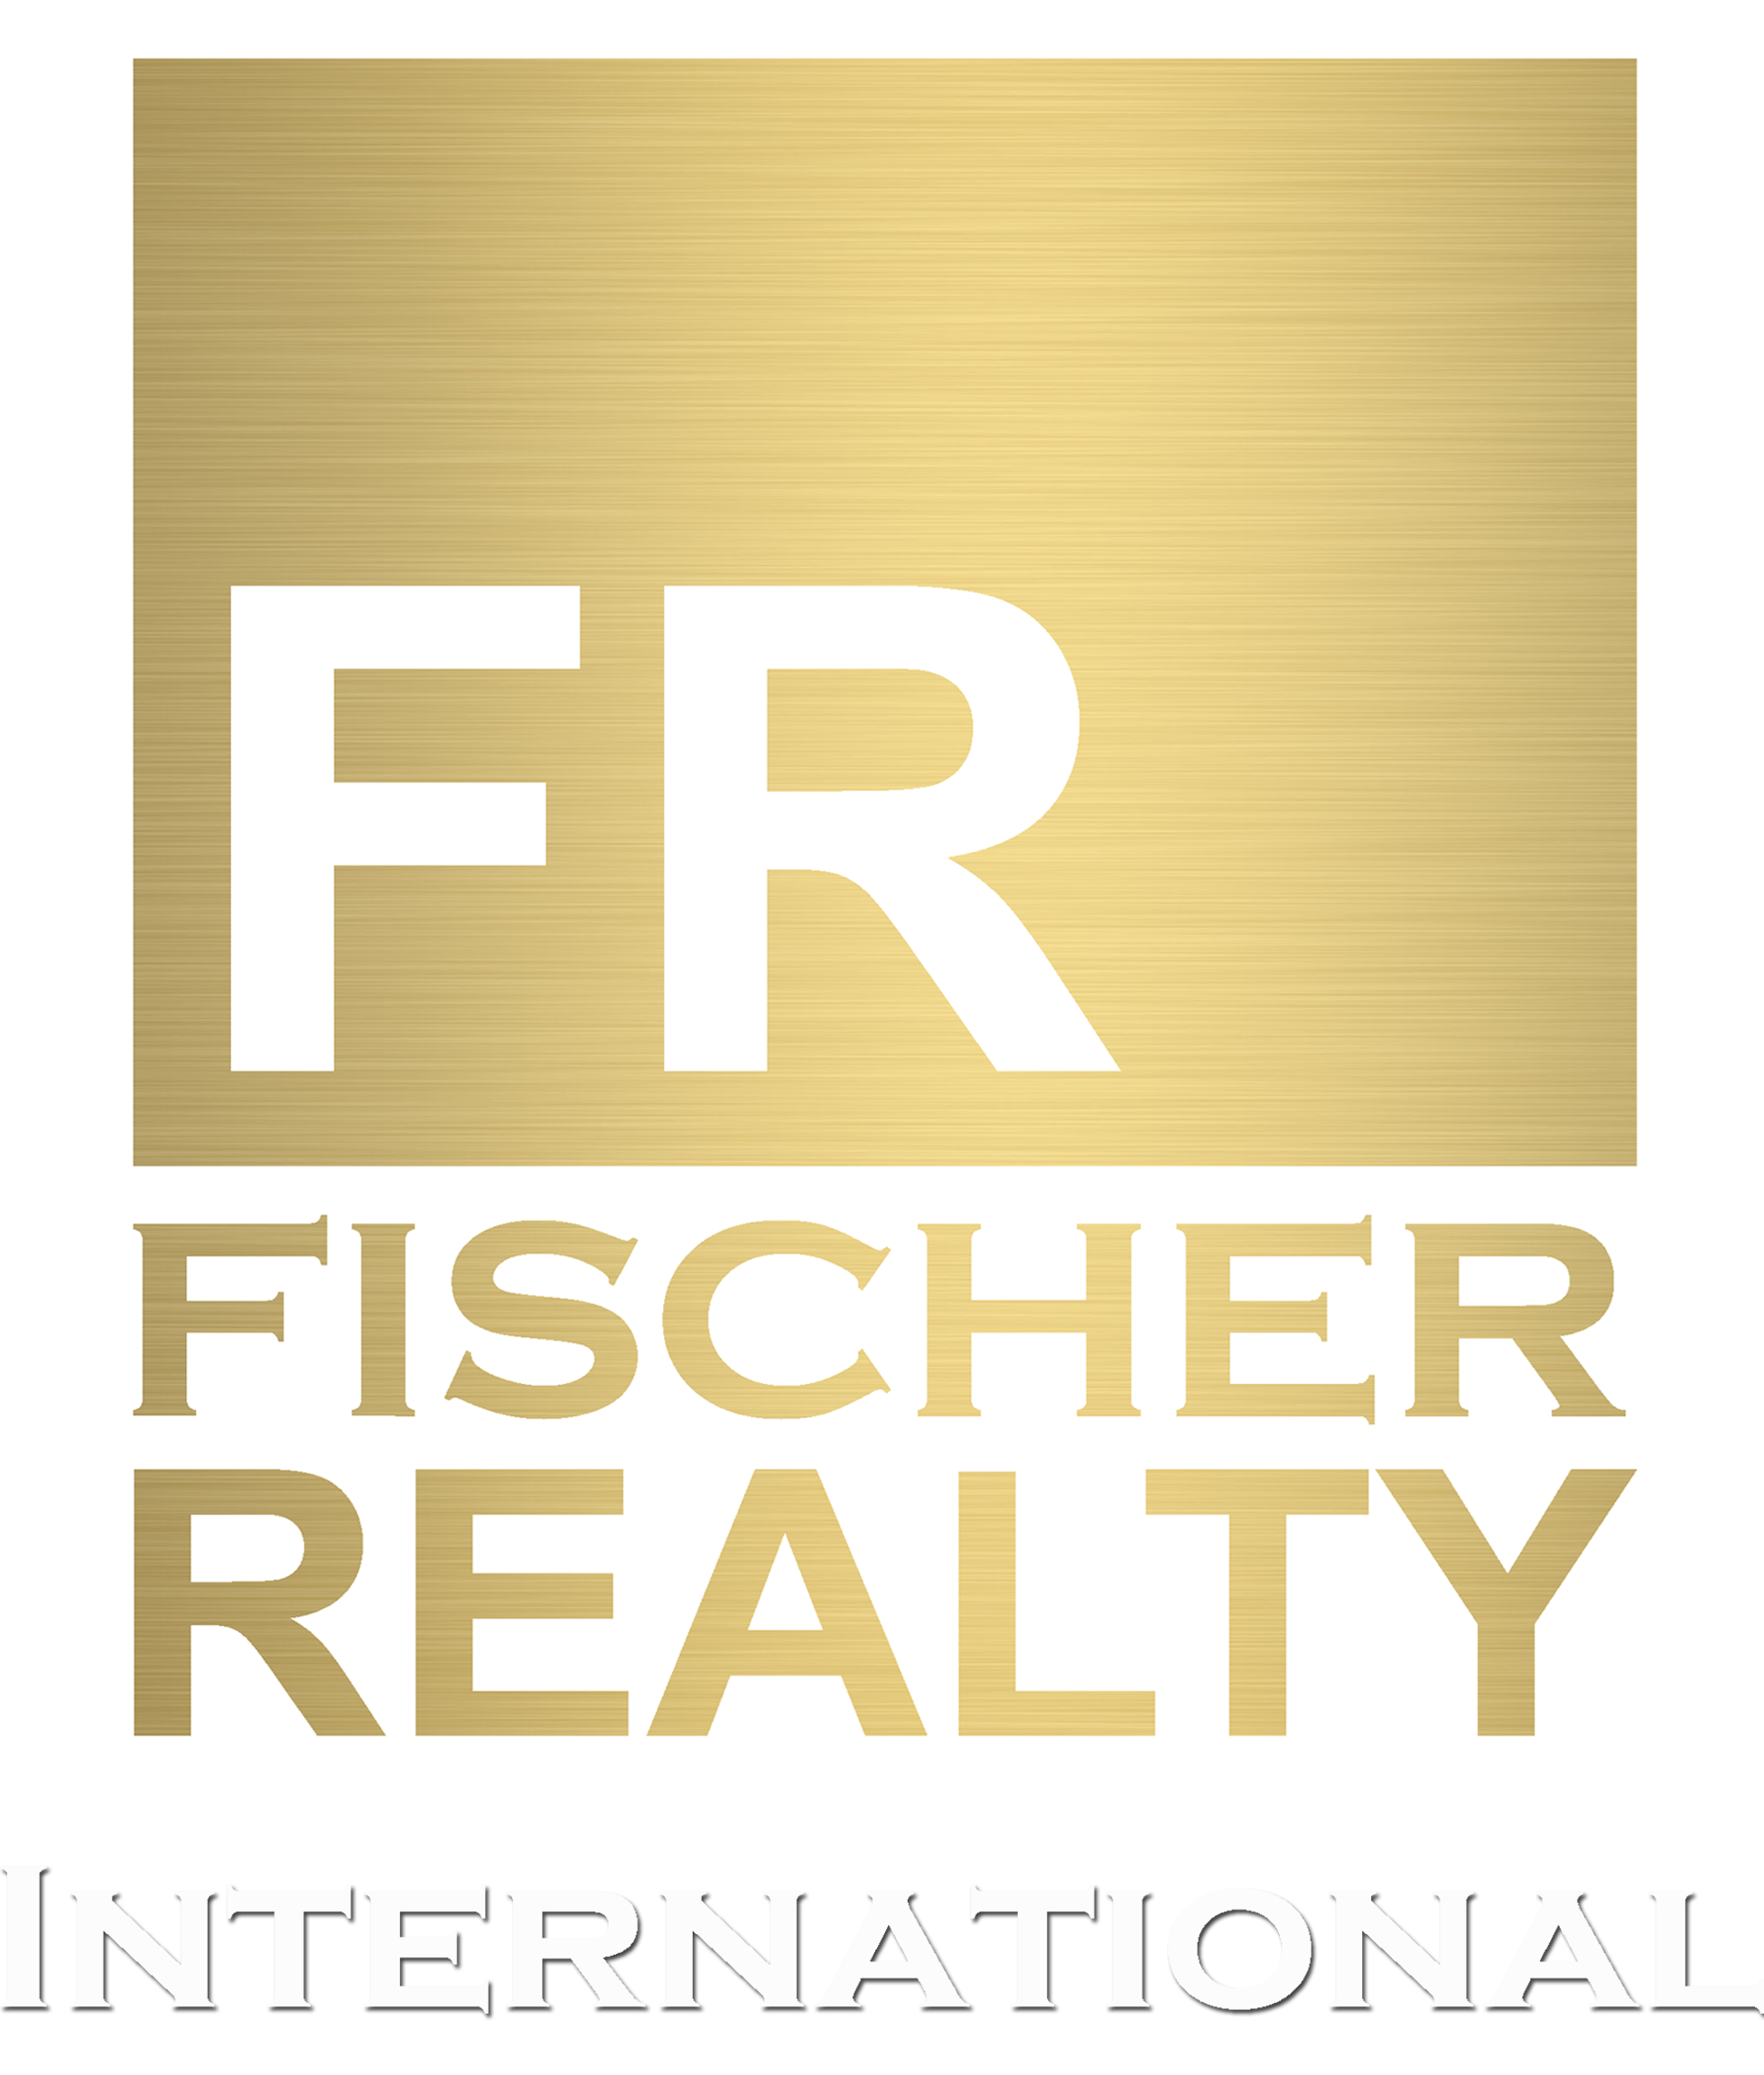 Fischer Realty International